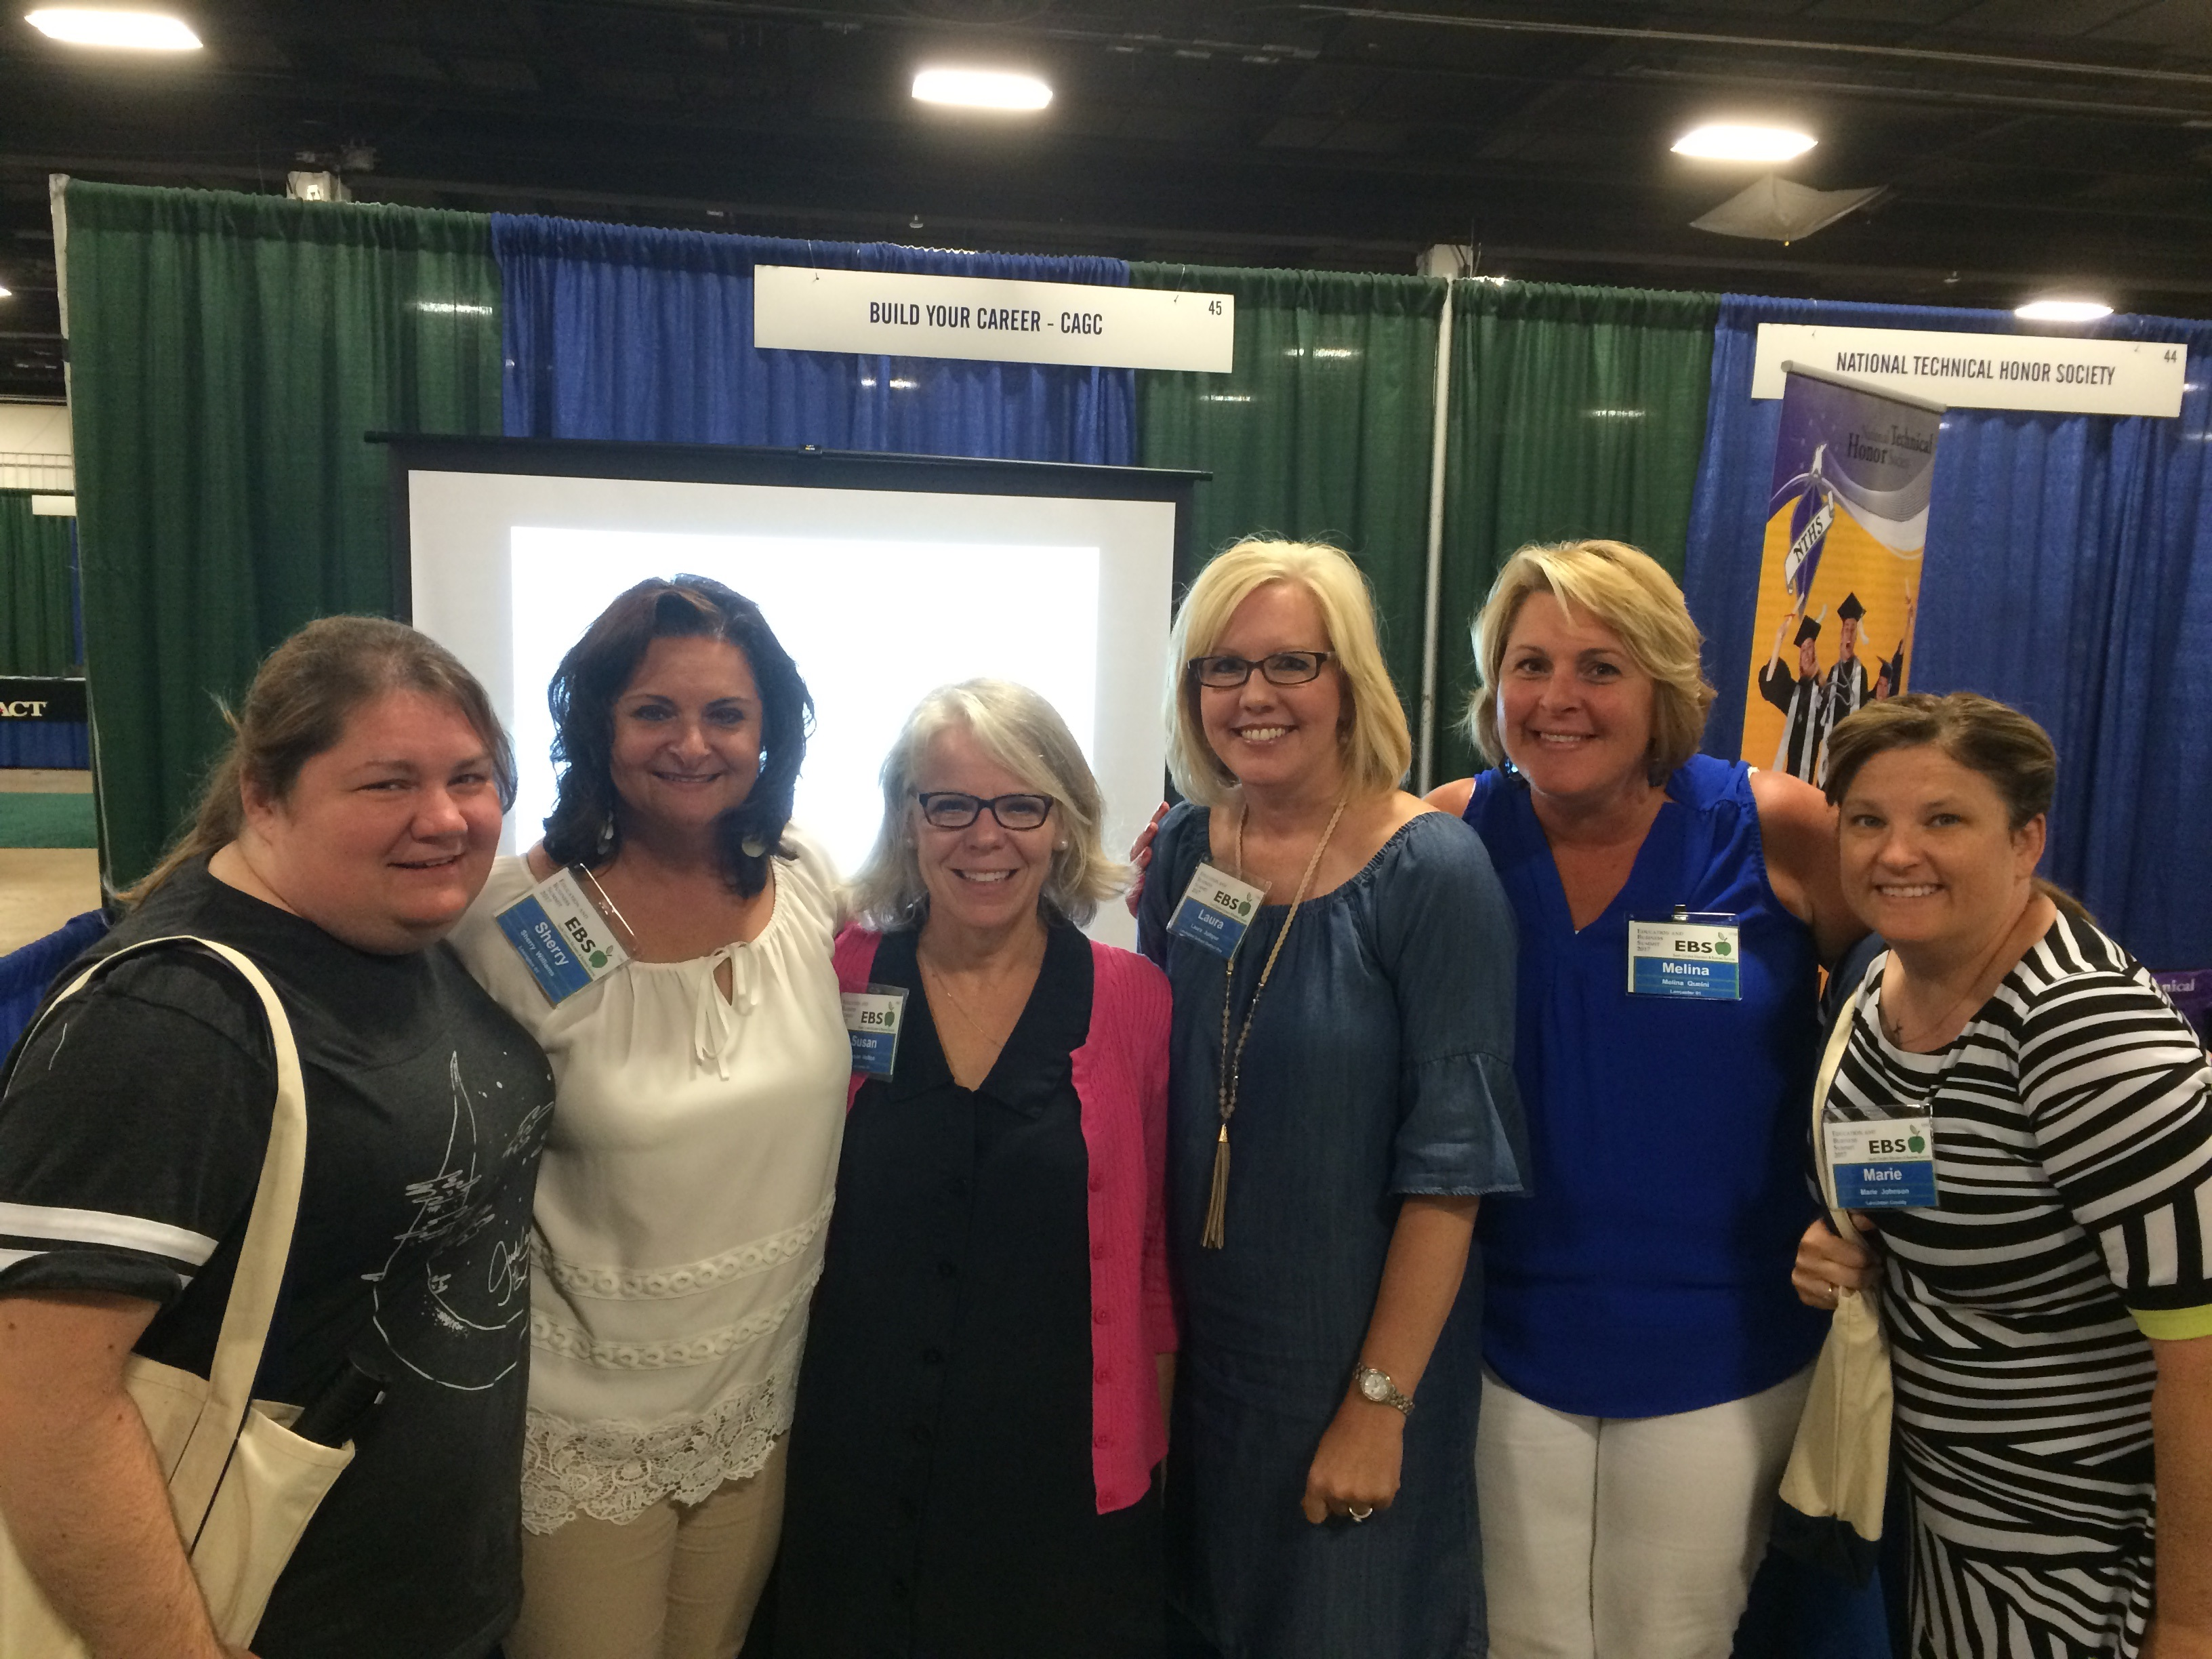 BYC PARTICIPATED IN SC CAREER AND TECHNICAL EDUCATION CONFERENCE